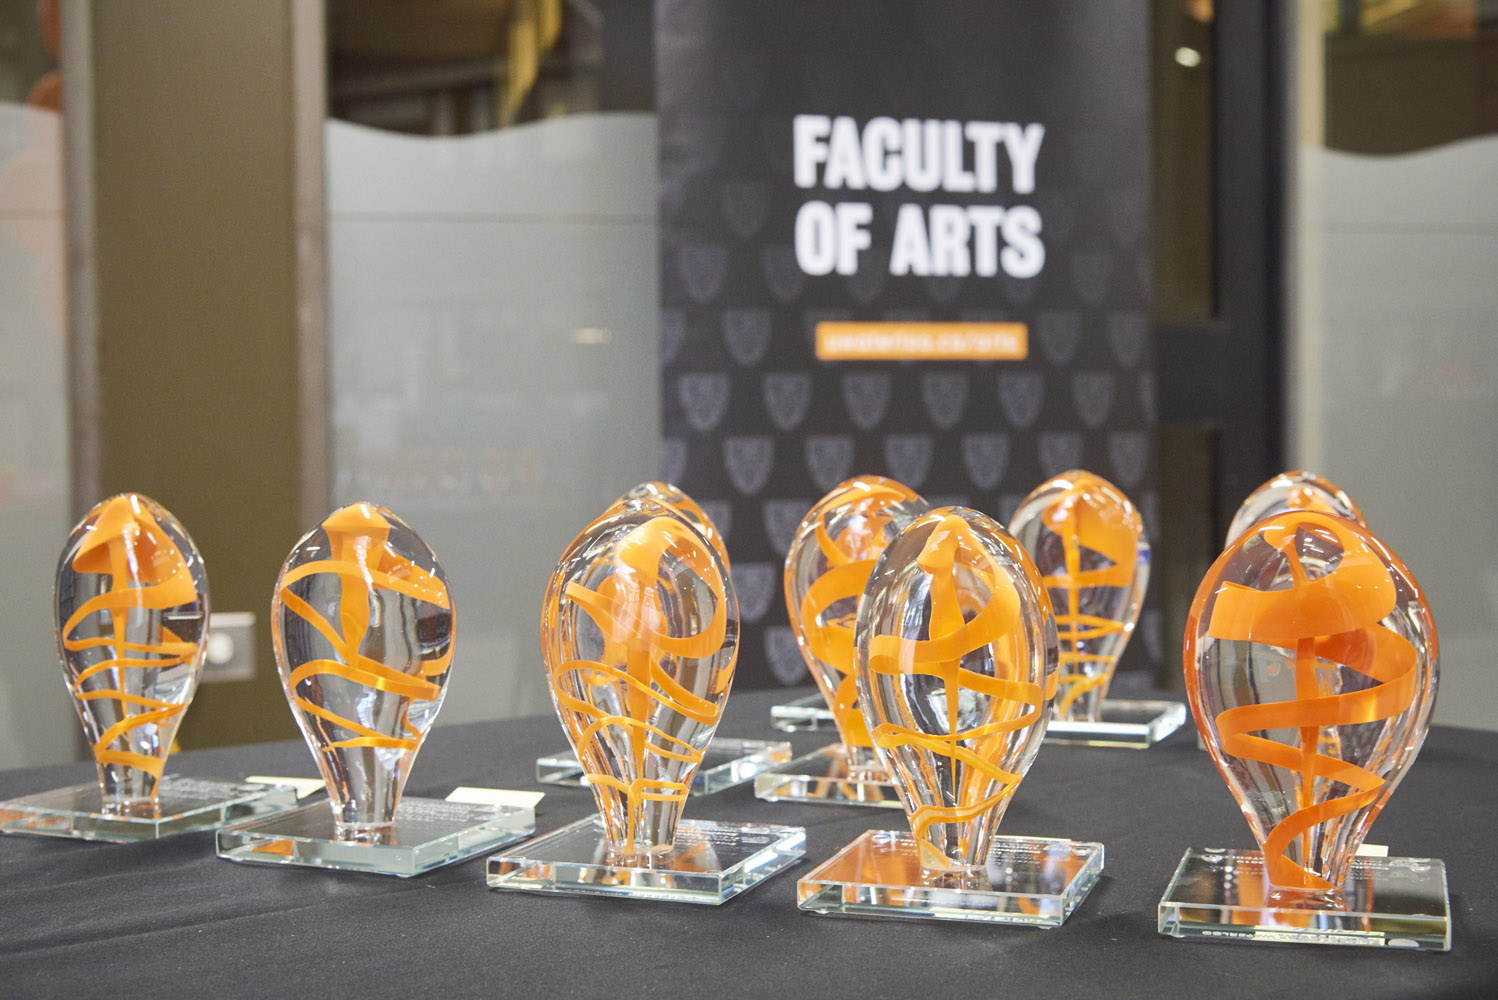 Arts Awards sculptures lined up